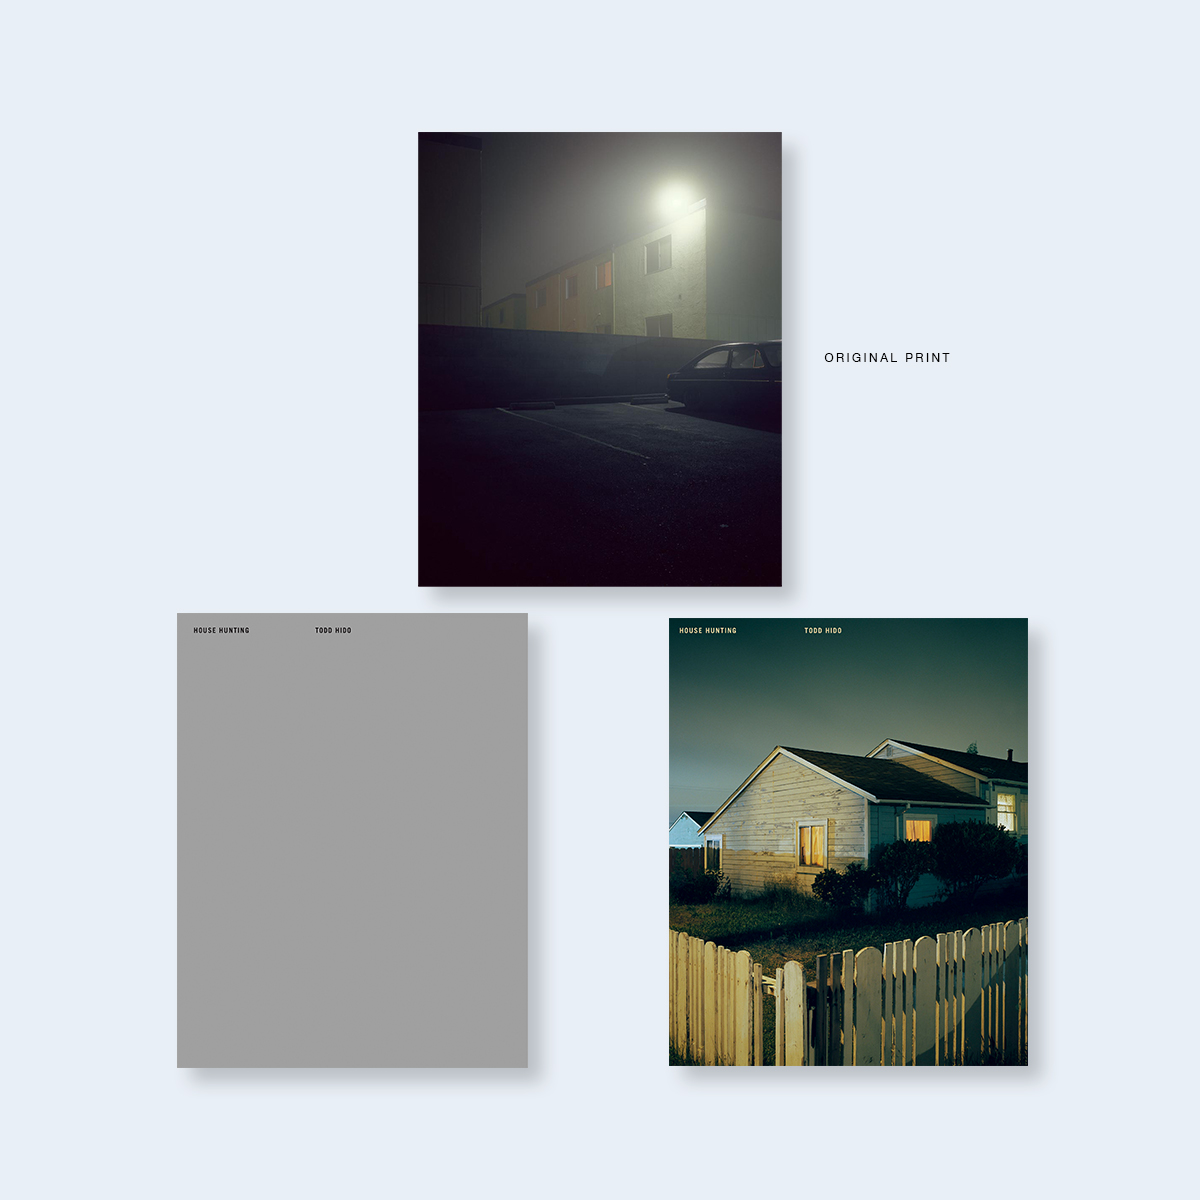 TODD HIDO | House Hunting (Deluxe Edition with Original Signed Print) |  Order >